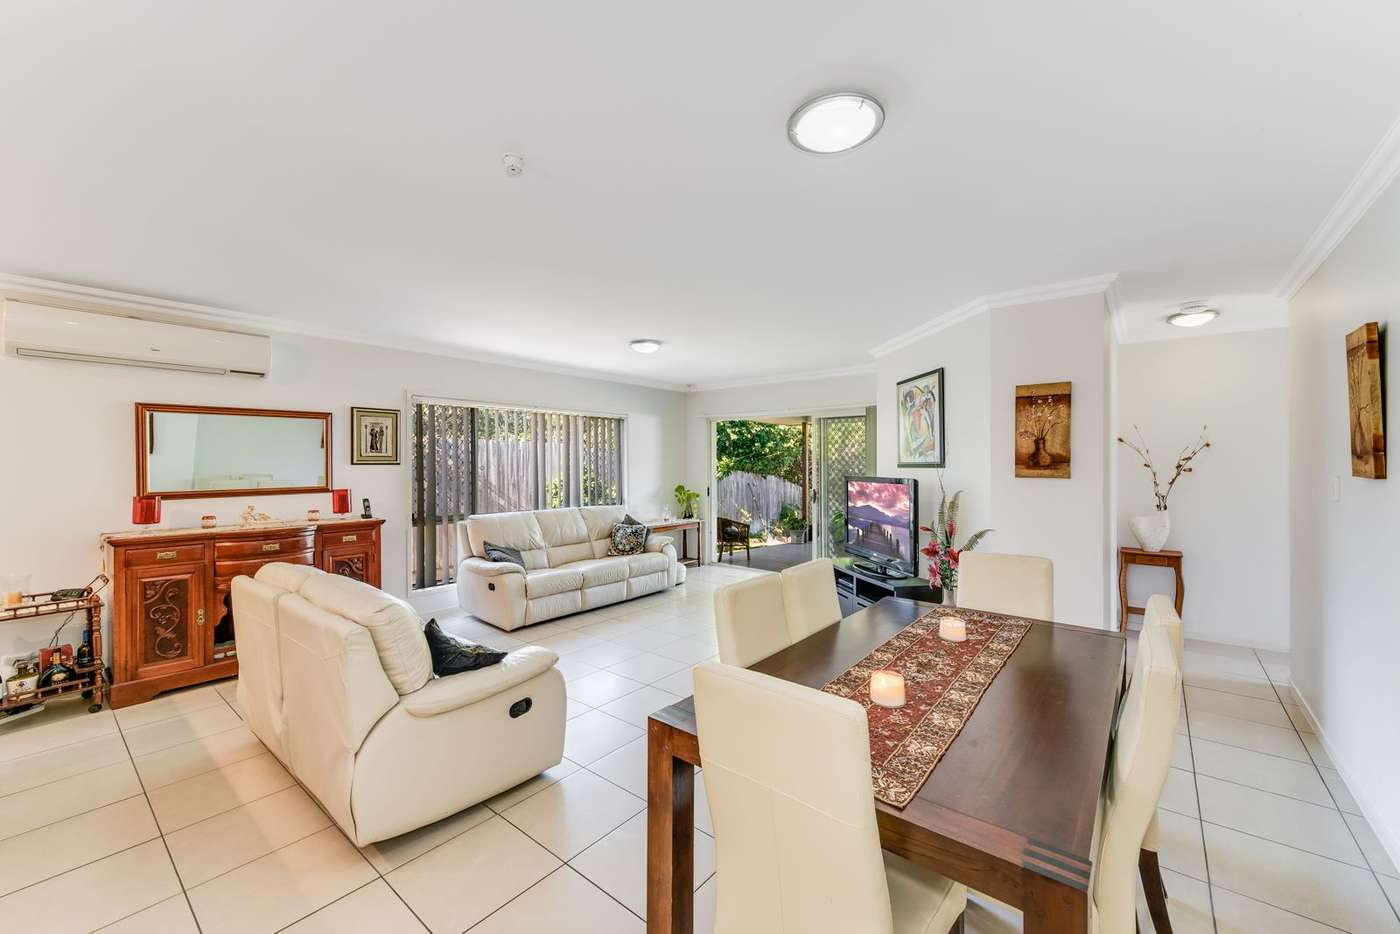 Fifth view of Homely house listing, 99 Winstanley Street, Carina Heights QLD 4152